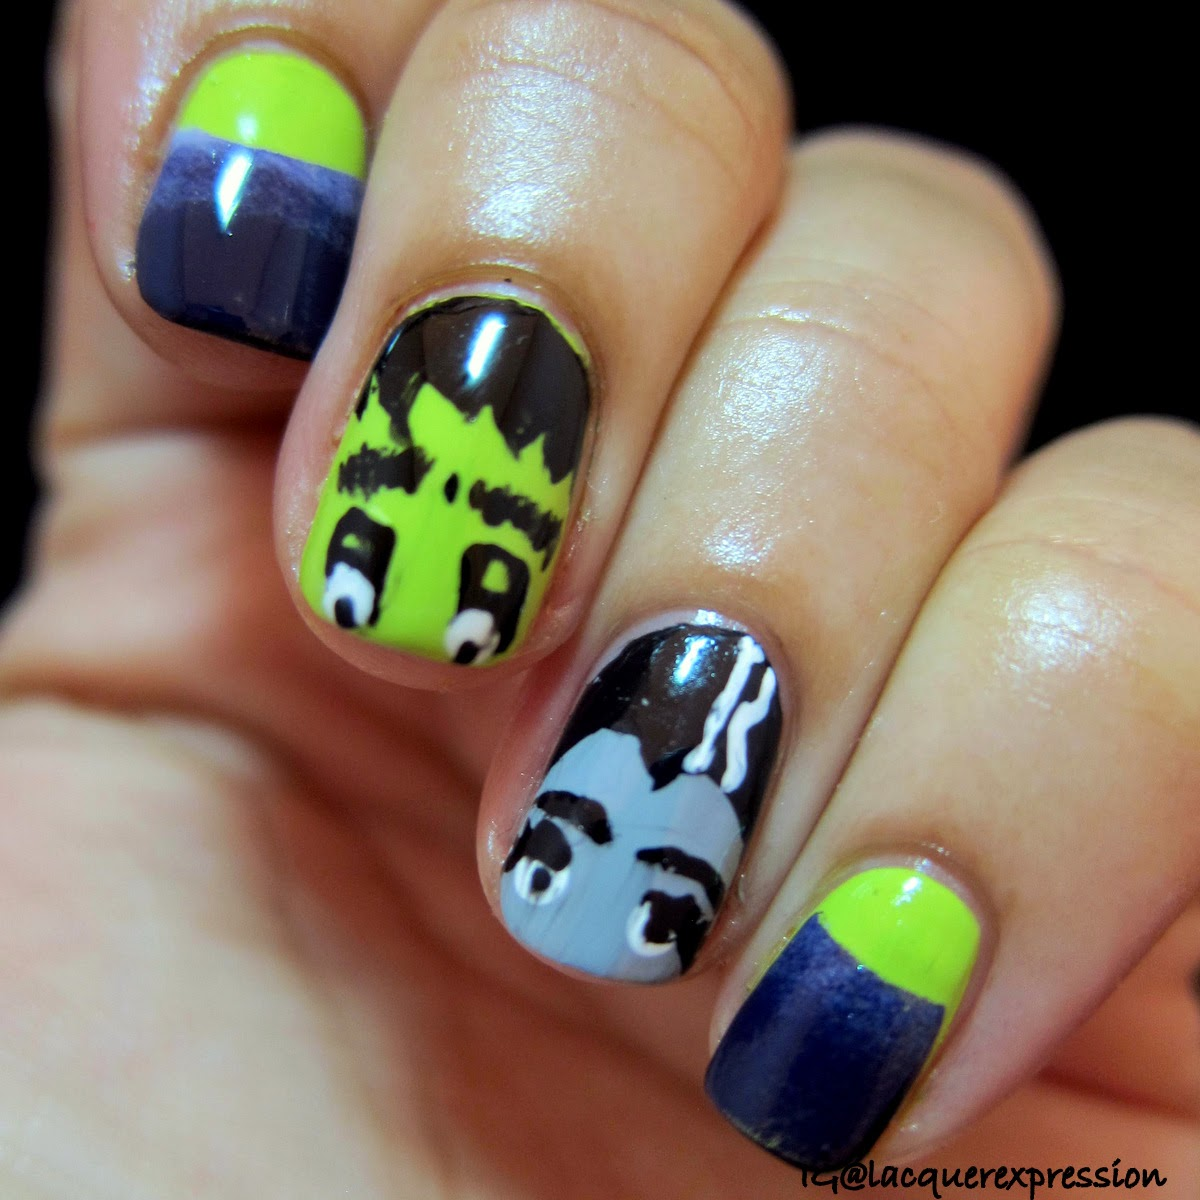 Frankenstein bride of Frankenstein Halloween nail art using Sinful Colors nail polish